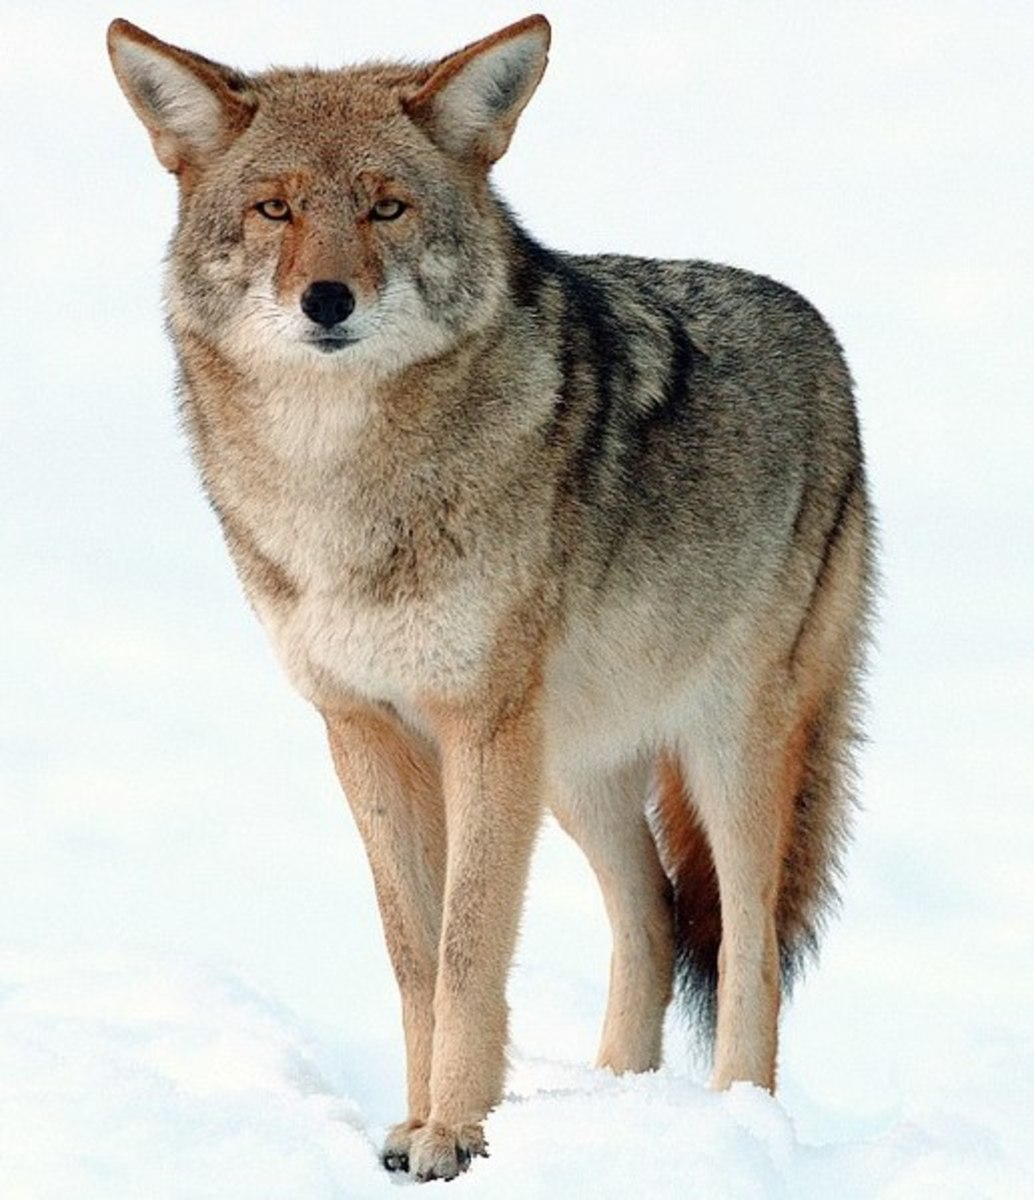 With the proper bullet, at reasonable ranges, the rimfires will give coyotes a dirt nap.